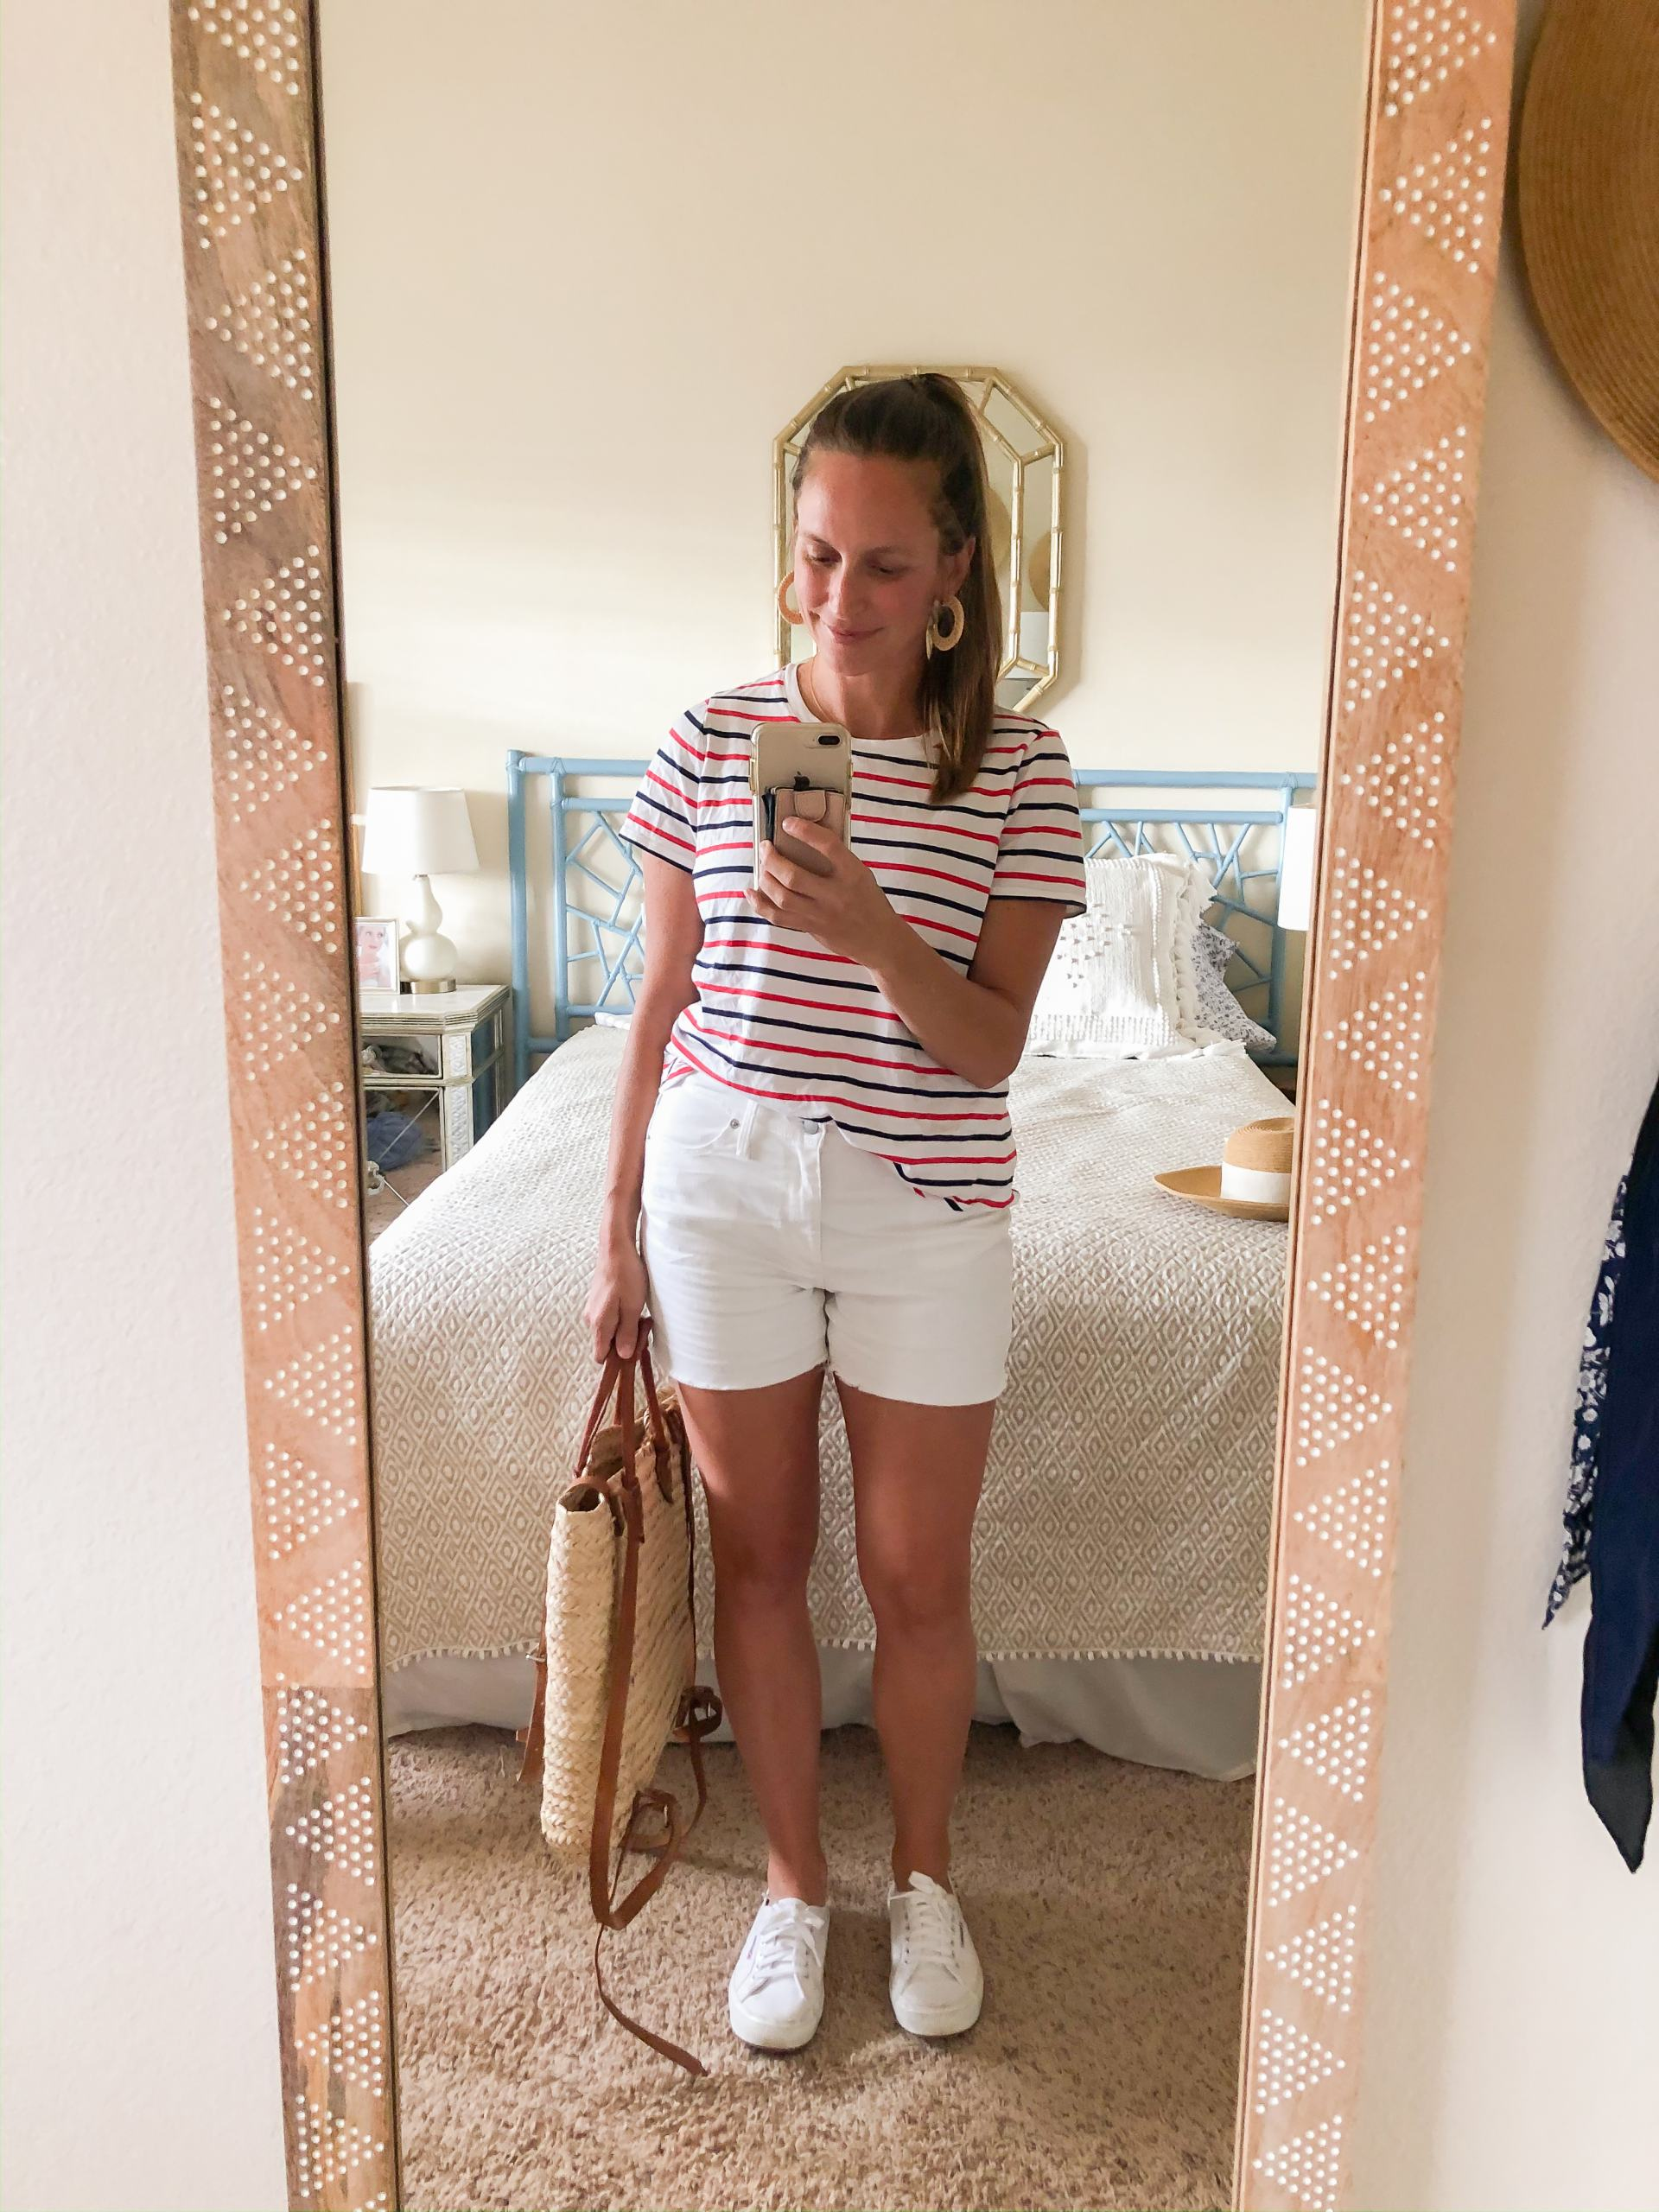 striped tshirt - red and blue striped shirt - white jean shorts - white sneakers - spring outfit idea